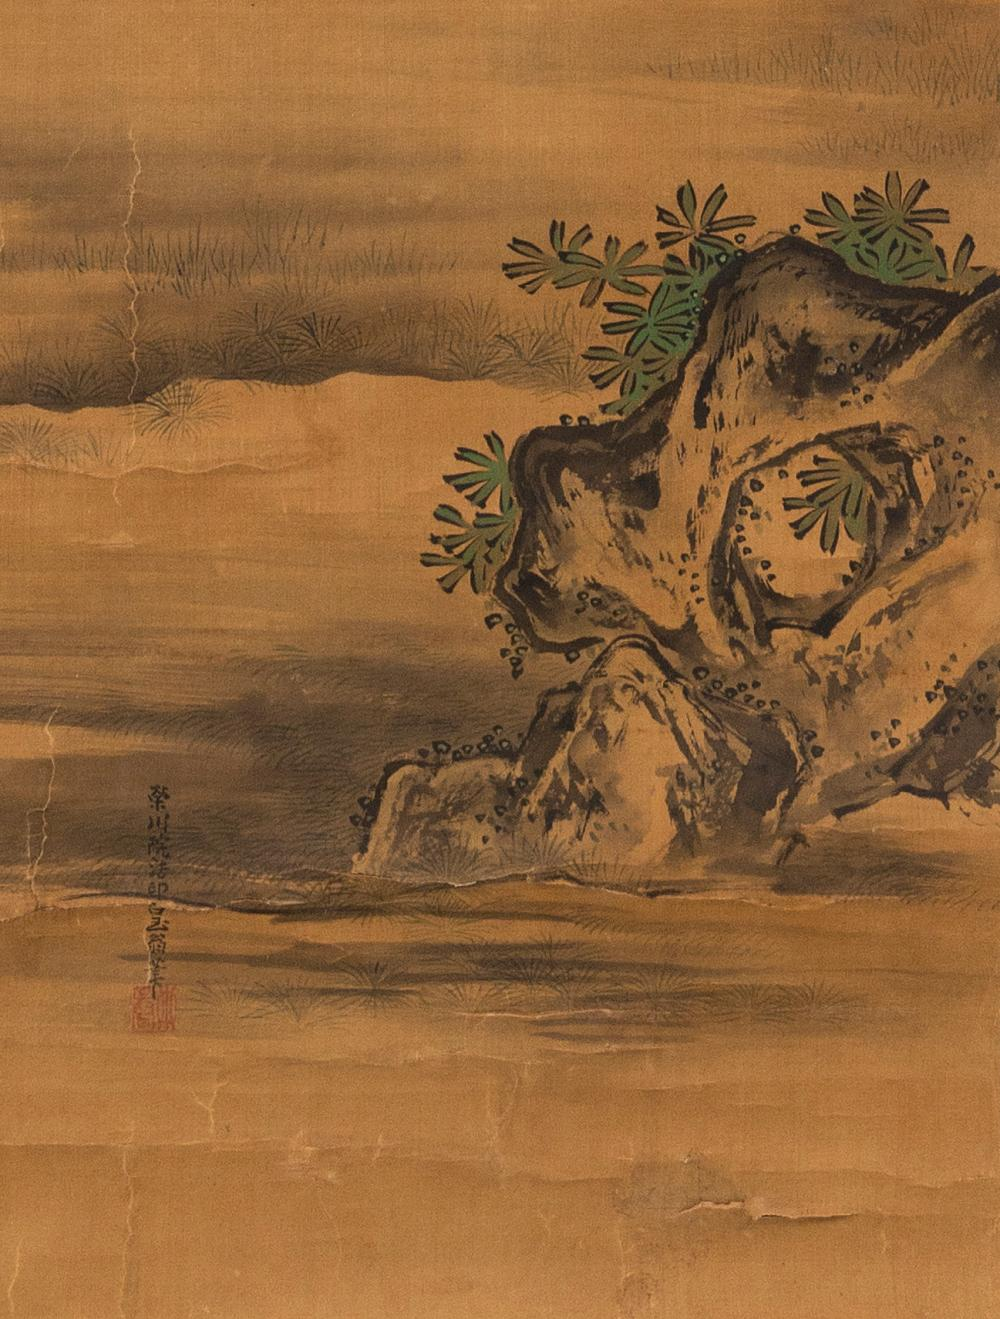 PAIR OF JAPANESE KANO-STYLE SCROLL PAINTINGS ON SILK One, attributed to Yosenin Kanenobu (1753-1808), depicts a scholar and attendan...